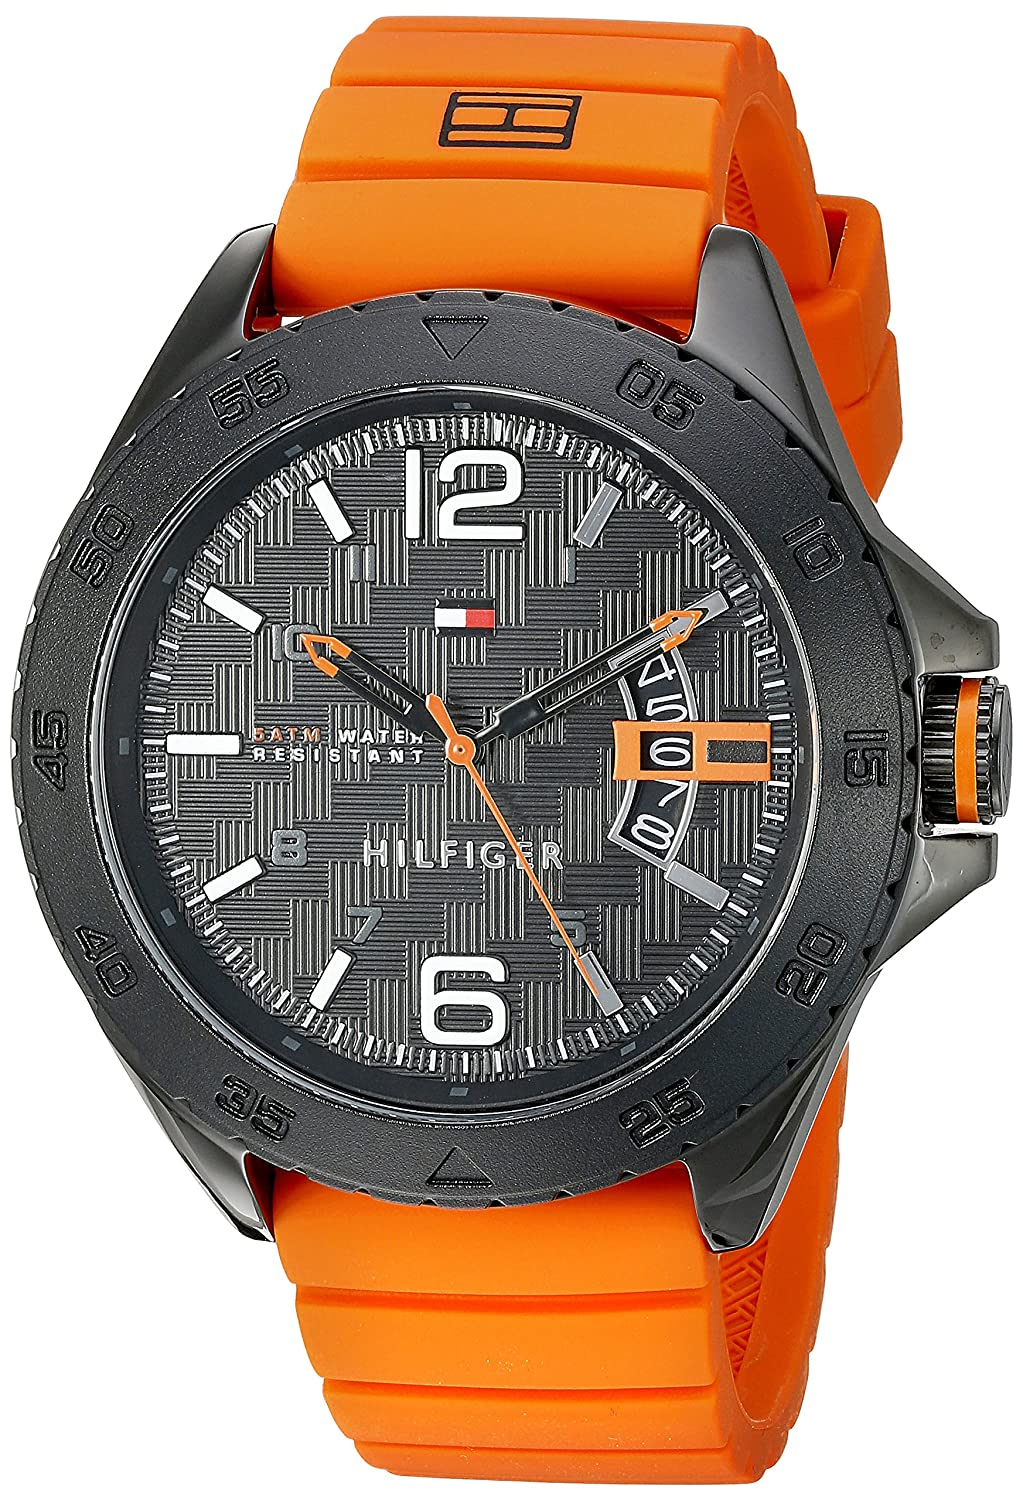 Amazon.com: Tommy Hilfiger Mens 1791205 Casual Sport Analog-Display Quartz Orange Watch: Watches